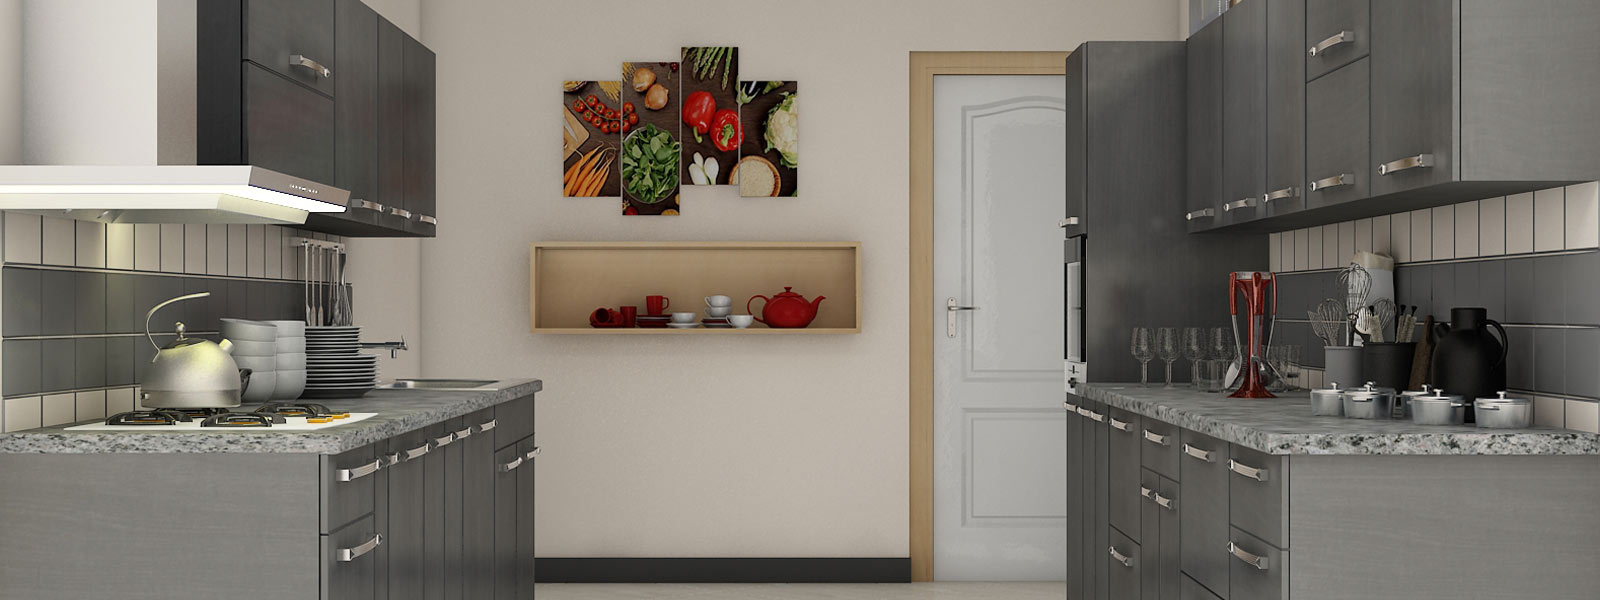 PARALLEL shape kitchen in vadapalani,Chennai